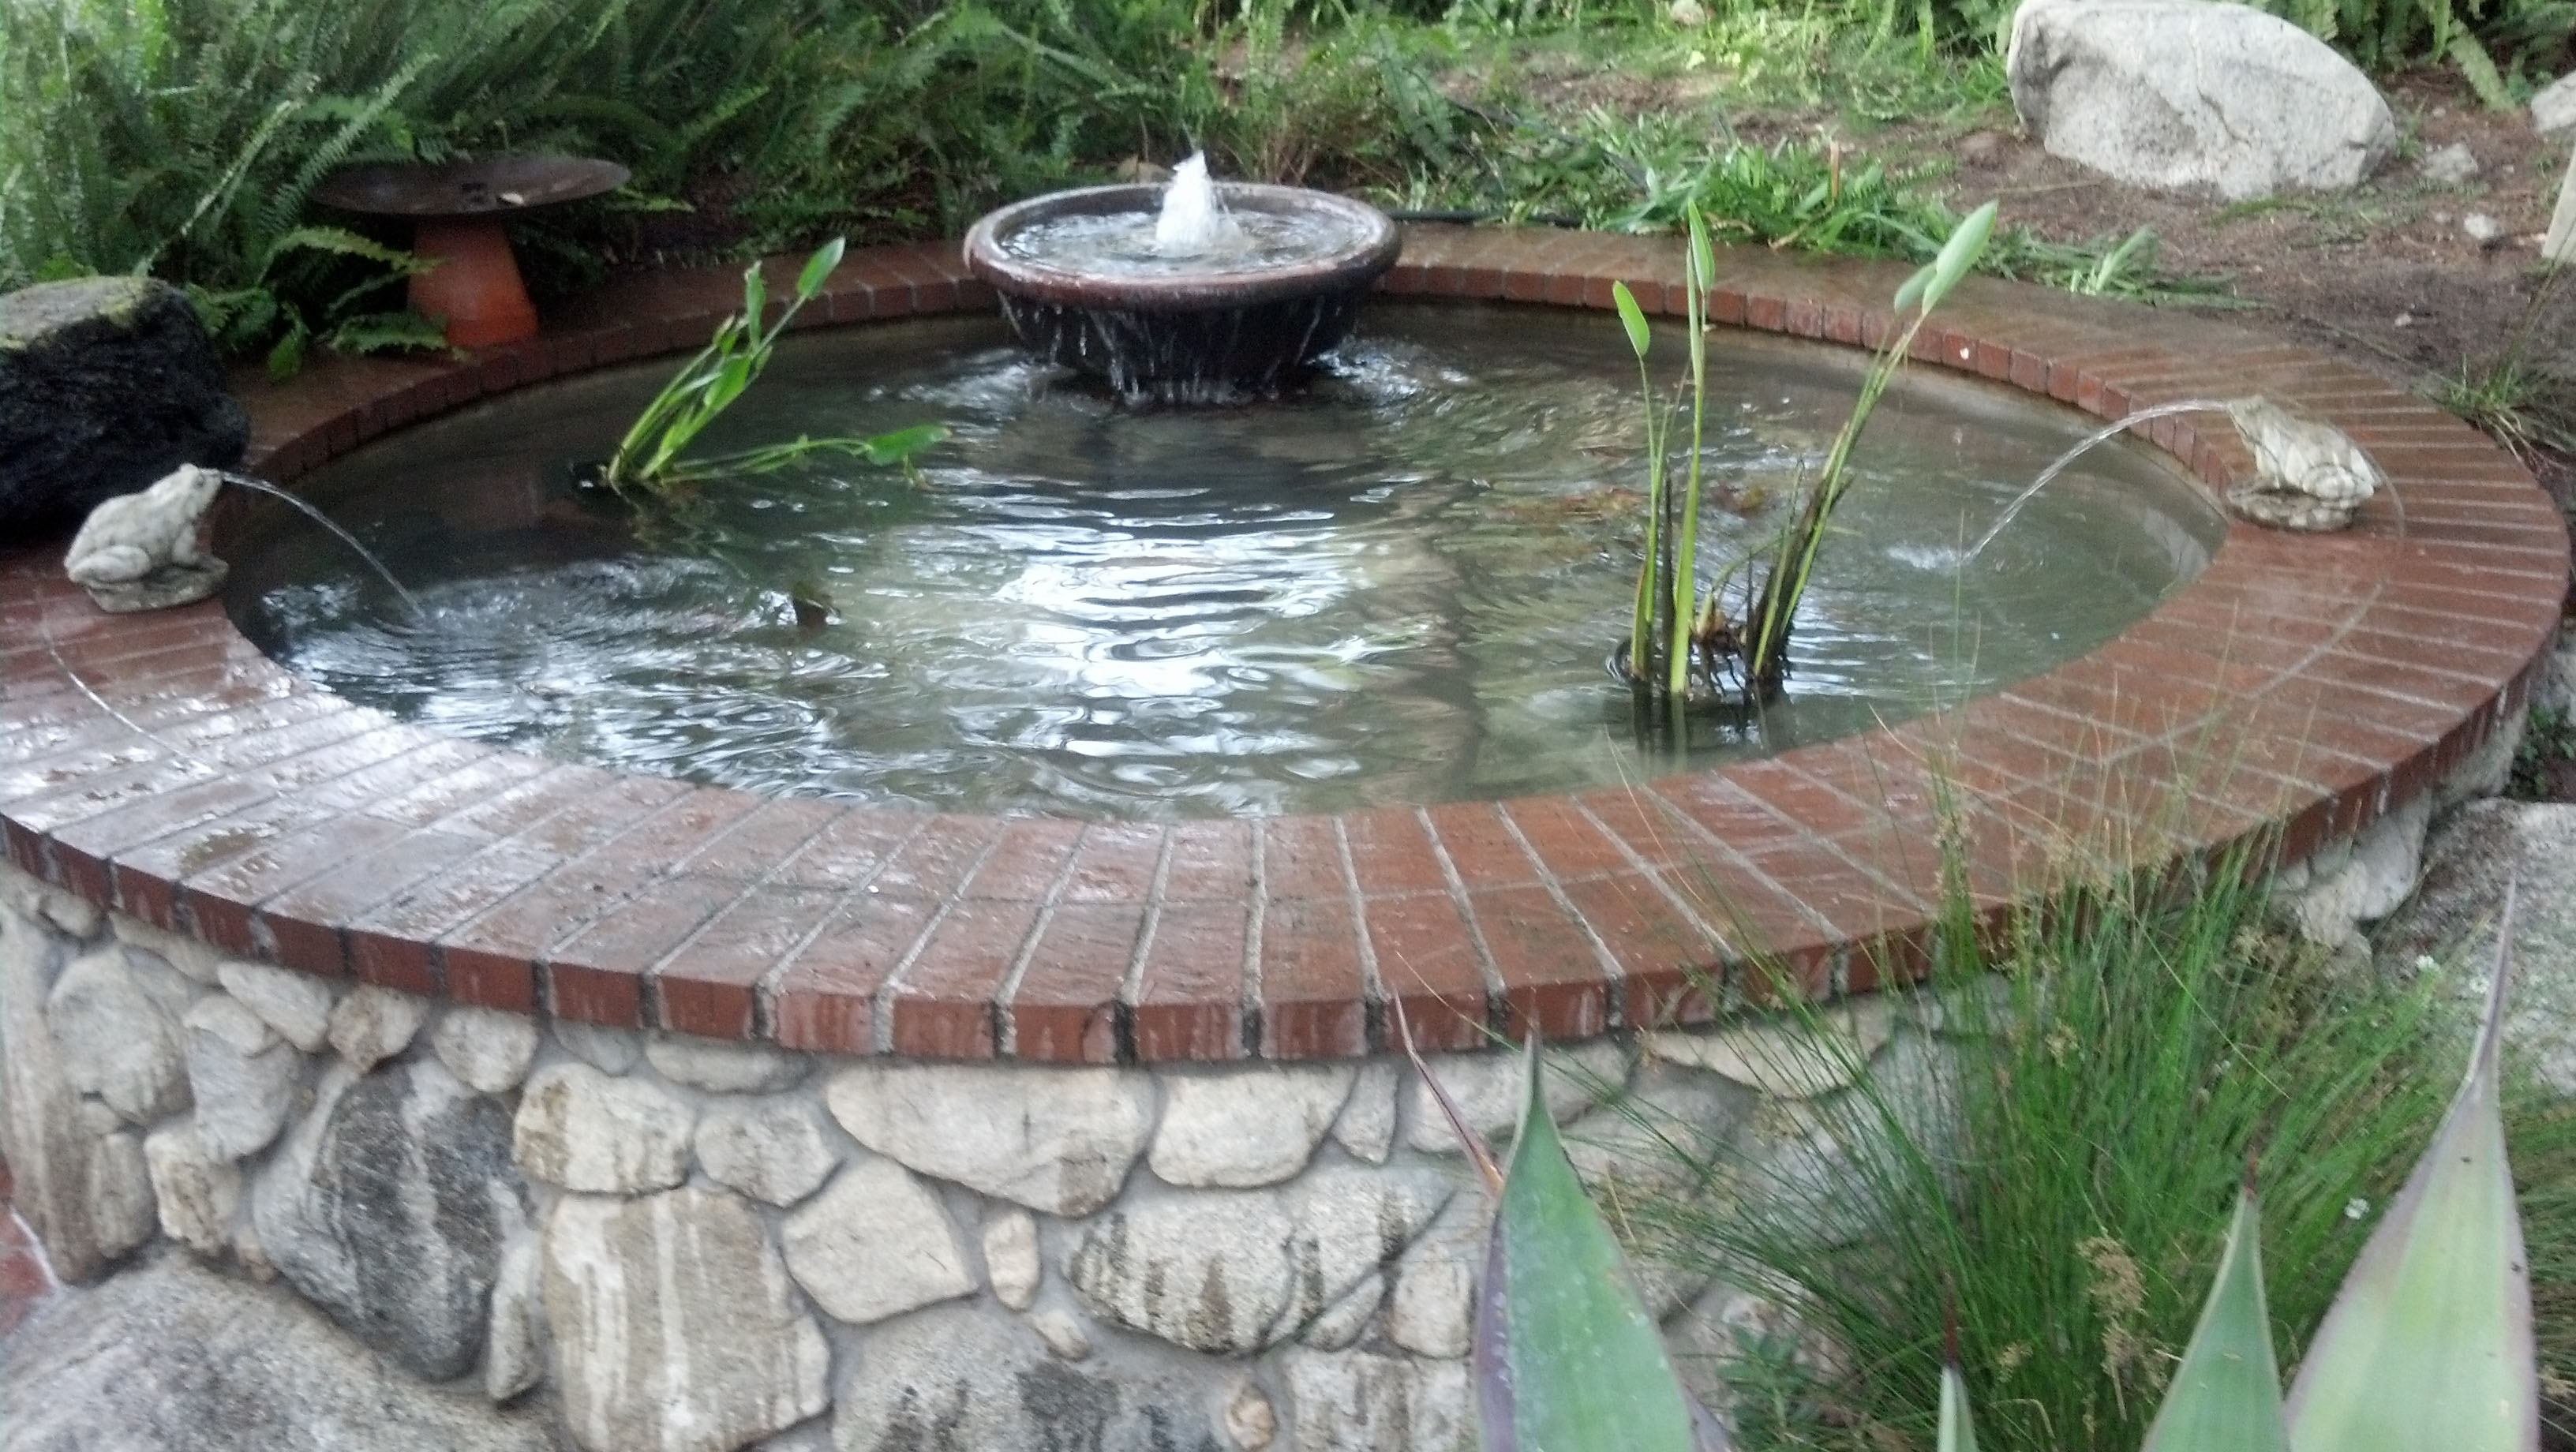 Pond building pond design ideas for Making a koi pond